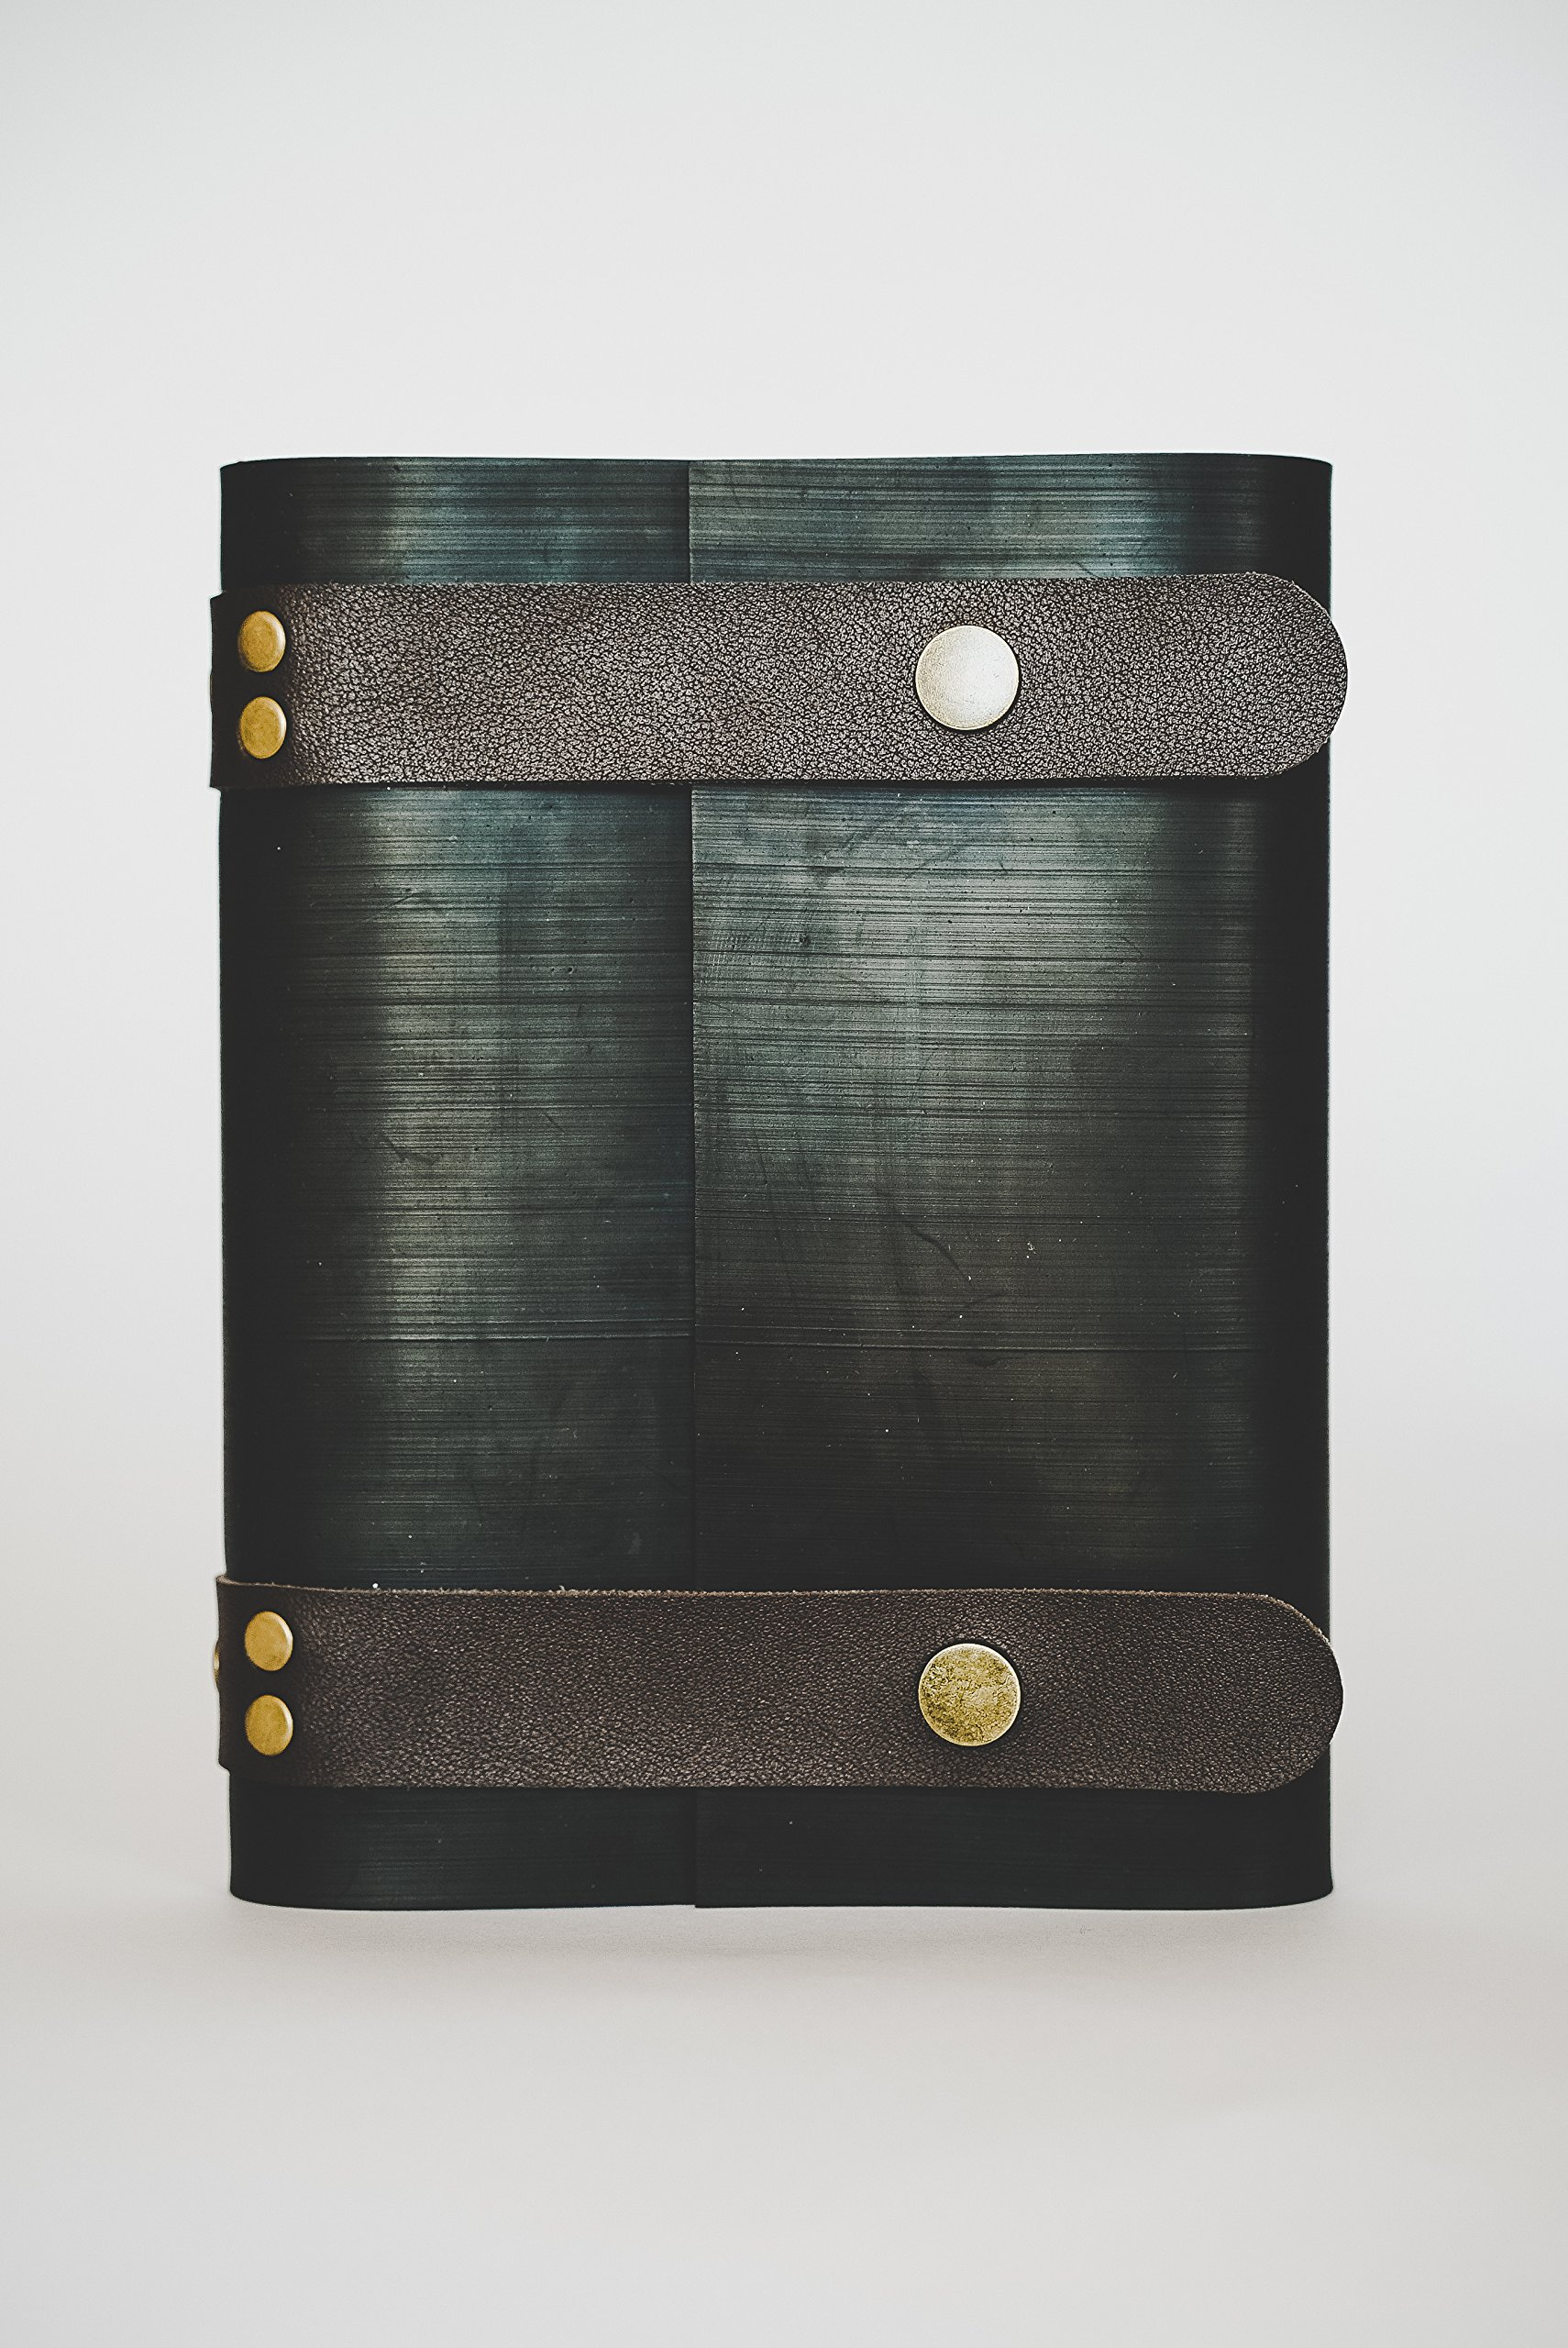 STREAMLET NOTEBOOK BULLET JOURNAL FROM RECYCLED TIRES. 100% Environmentally Smart. Handmade with Tire Cover, Vegan Leather Straps, 8x6 Inches, 240 Blank Pages. Compare to Quality Leather COFFEE